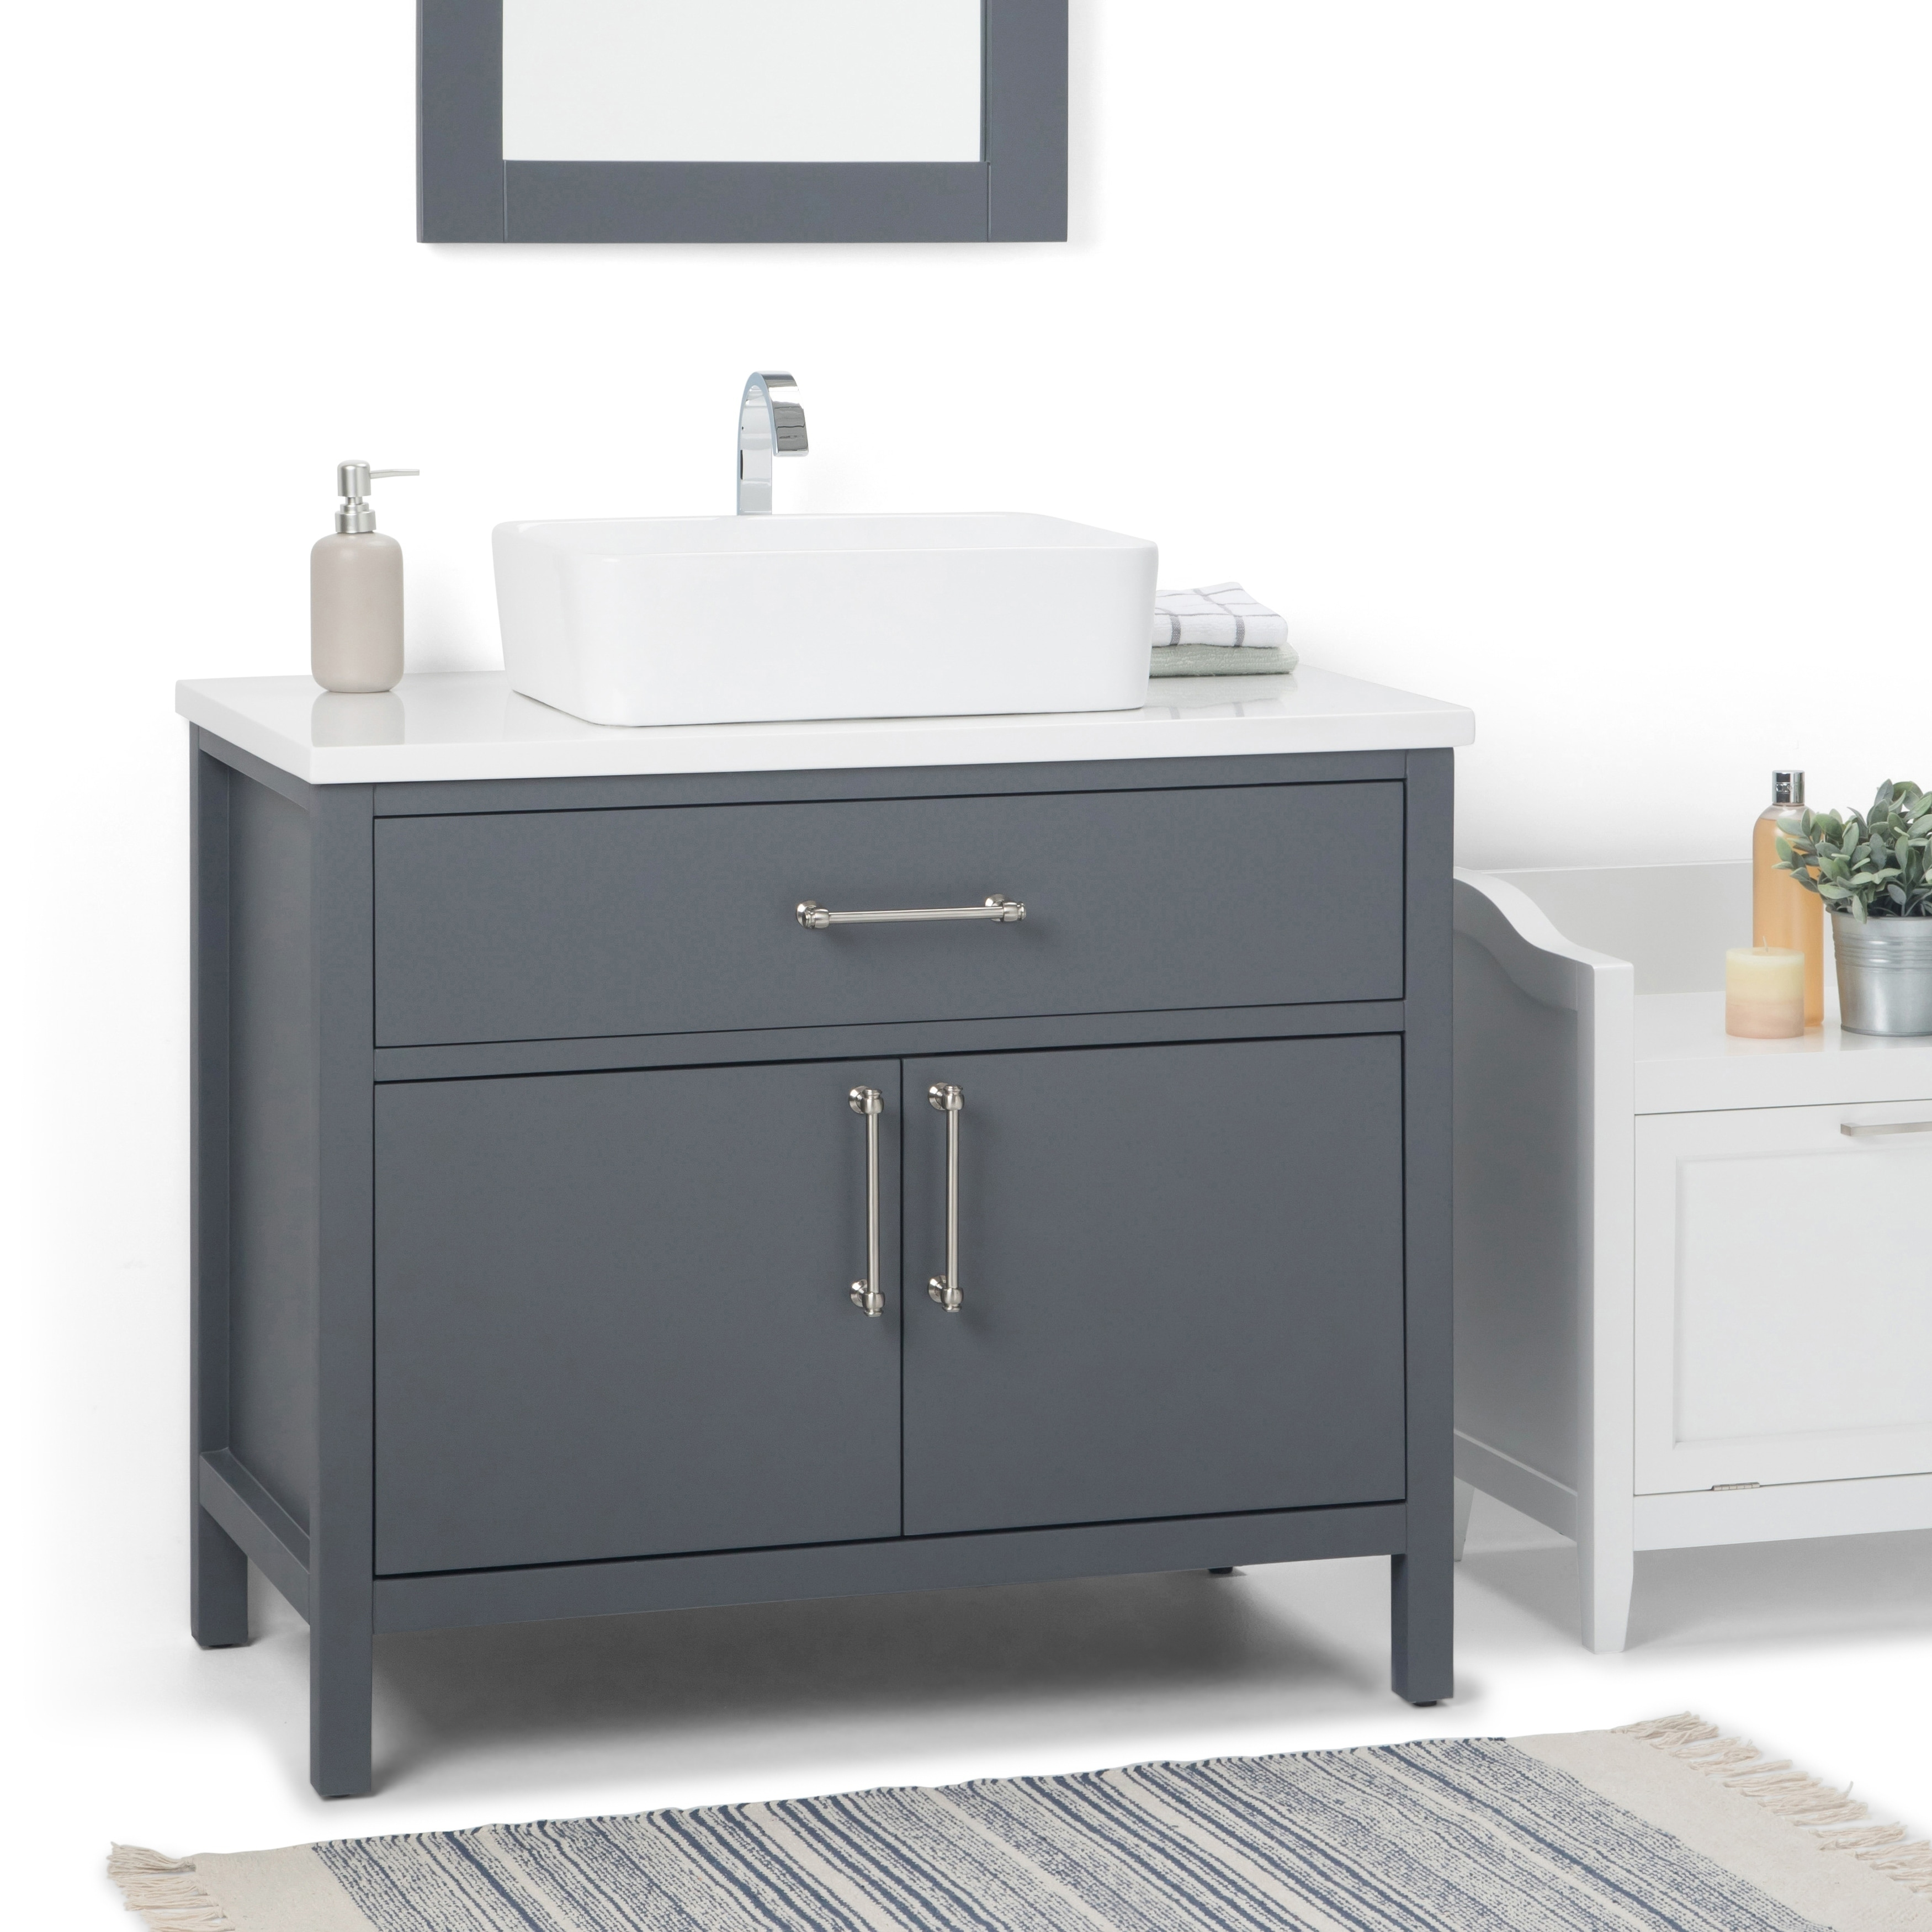 Wyndenhall Farley 36 Inch Contemporary Bath Vanity In Charcoal Grey With White Engineered Marble Extra Thick Top Overstock 22736250